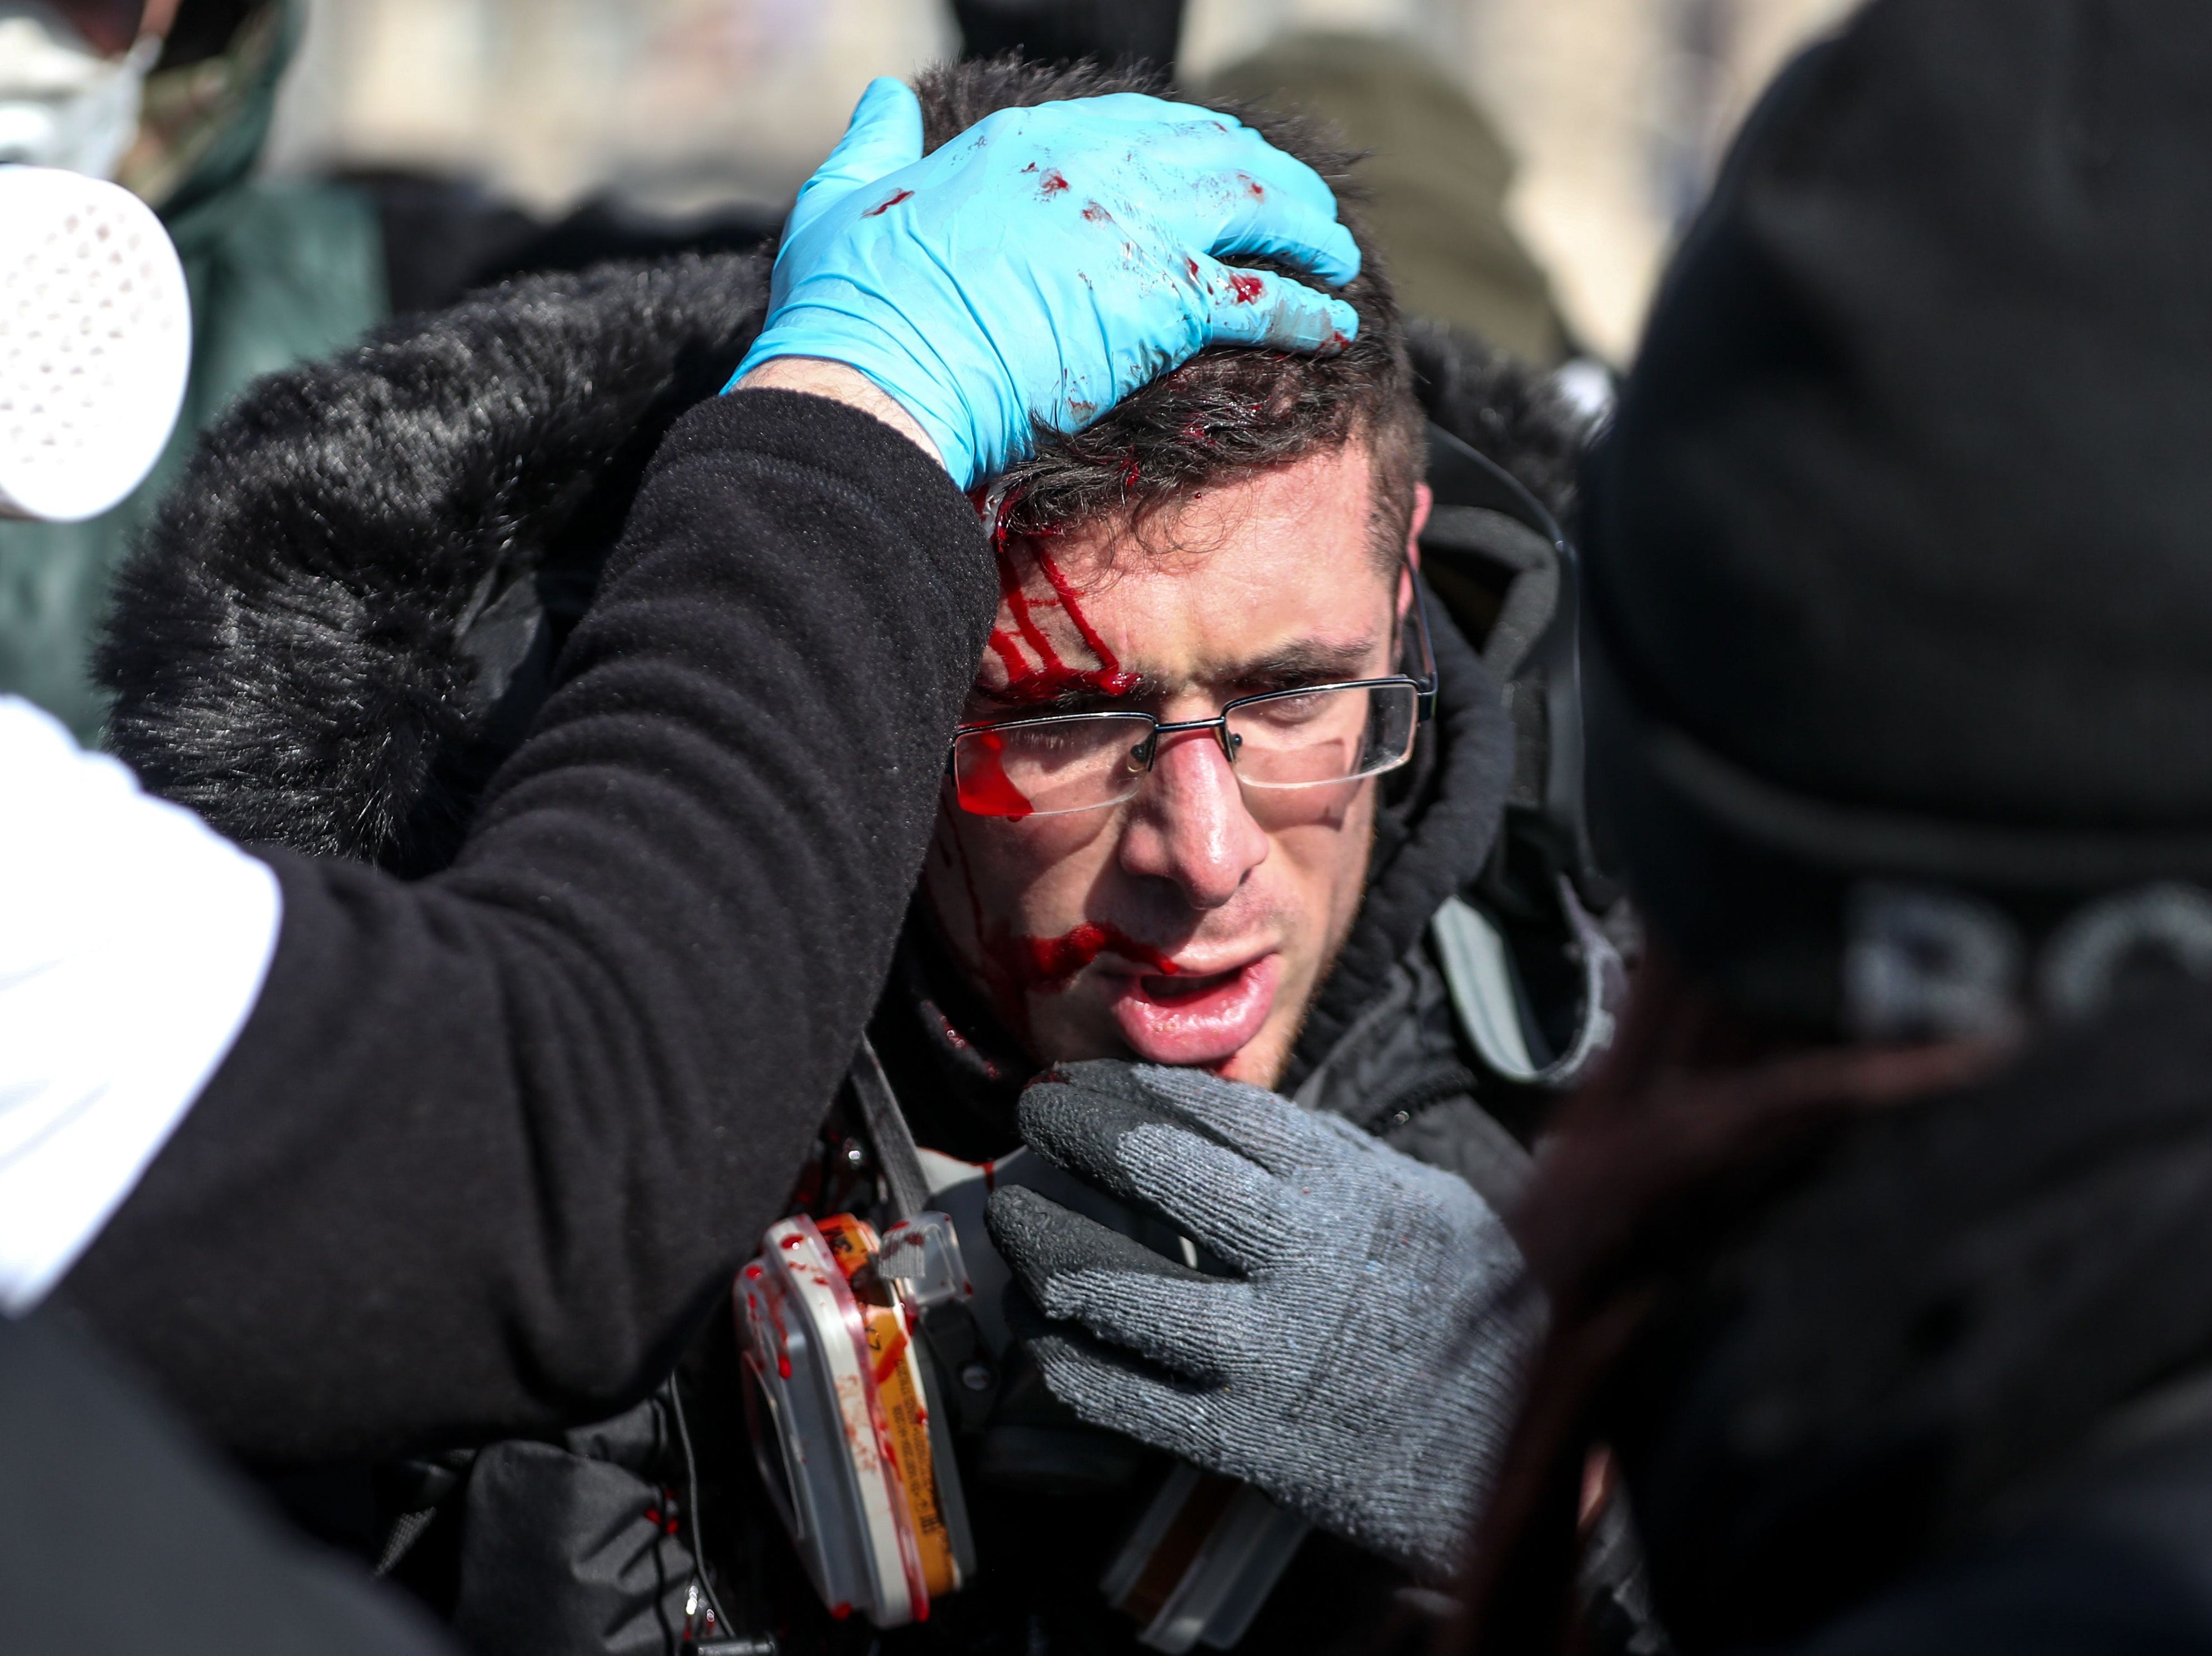 An injured protester is pictured during clashes with riot forces on the Champs-Elysees in Paris on March 16, 2019, during the 18th consecutive Saturday of demonstrations called by the 'Yellow Vest' (gilets jaunes) movement.